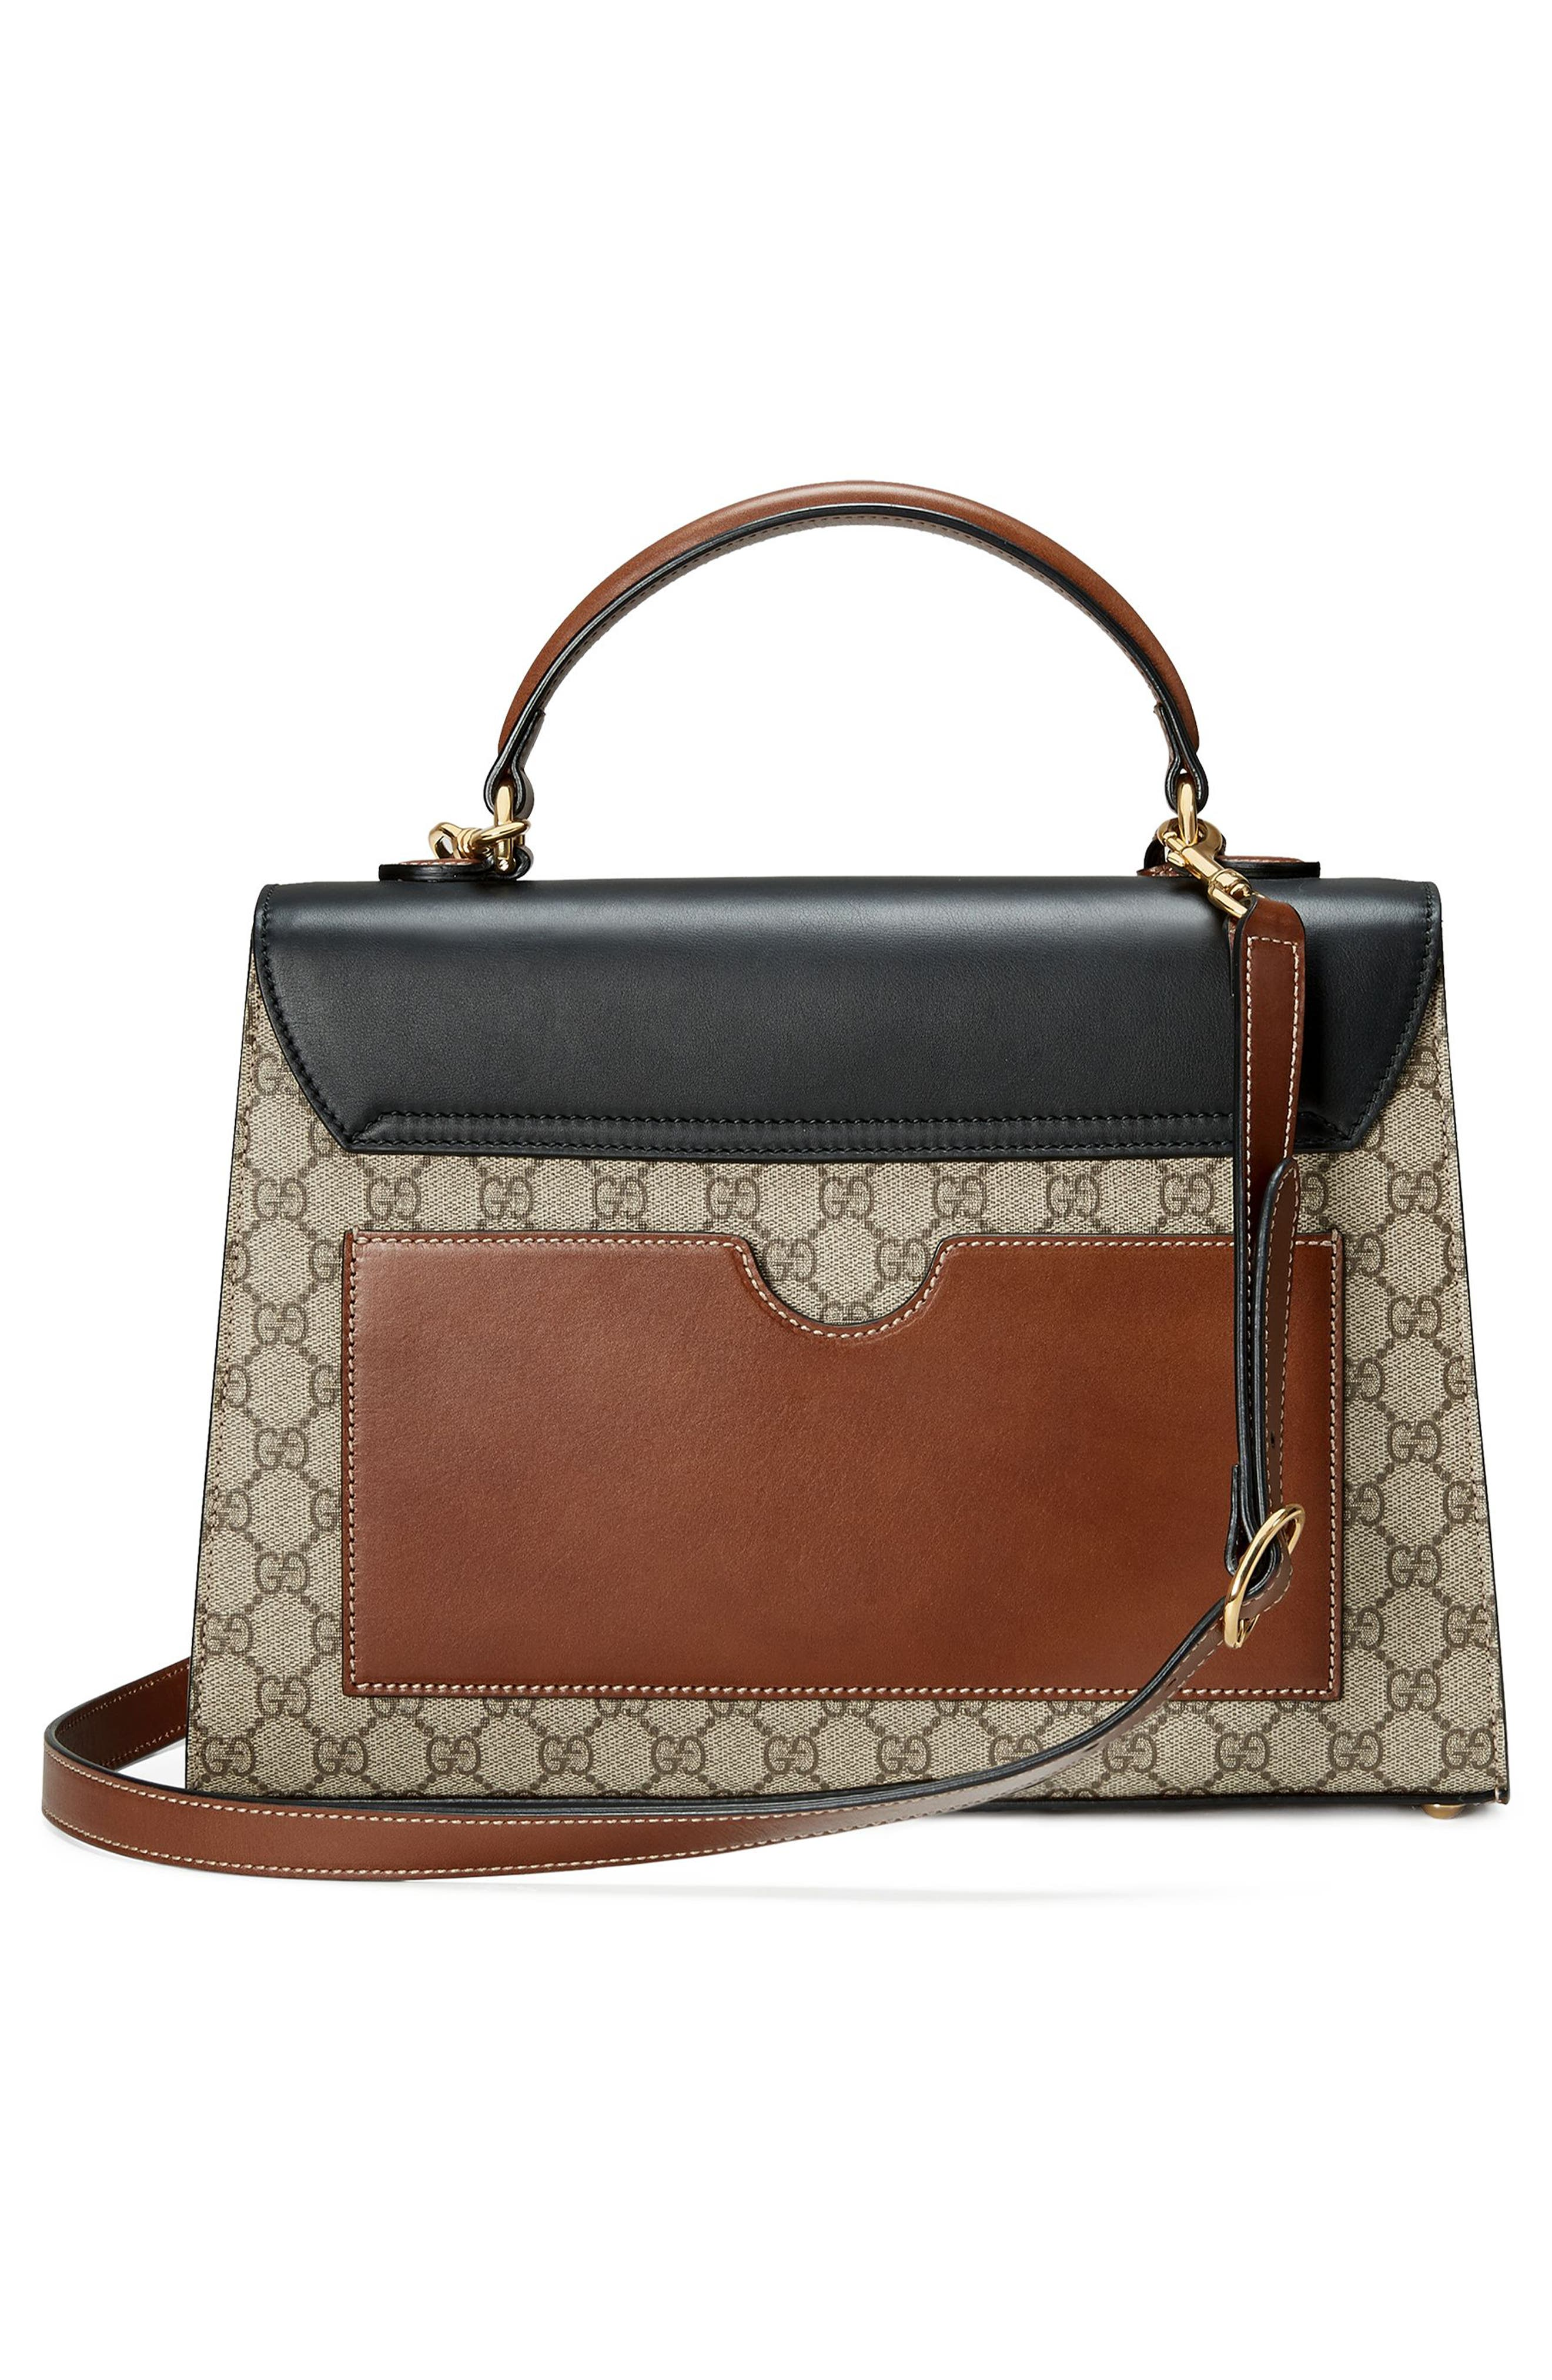 Medium Padlock Top Handle GG Supreme Canvas & Leather Bag,                             Alternate thumbnail 2, color,                             Beige Ebony/Nero/Cuir